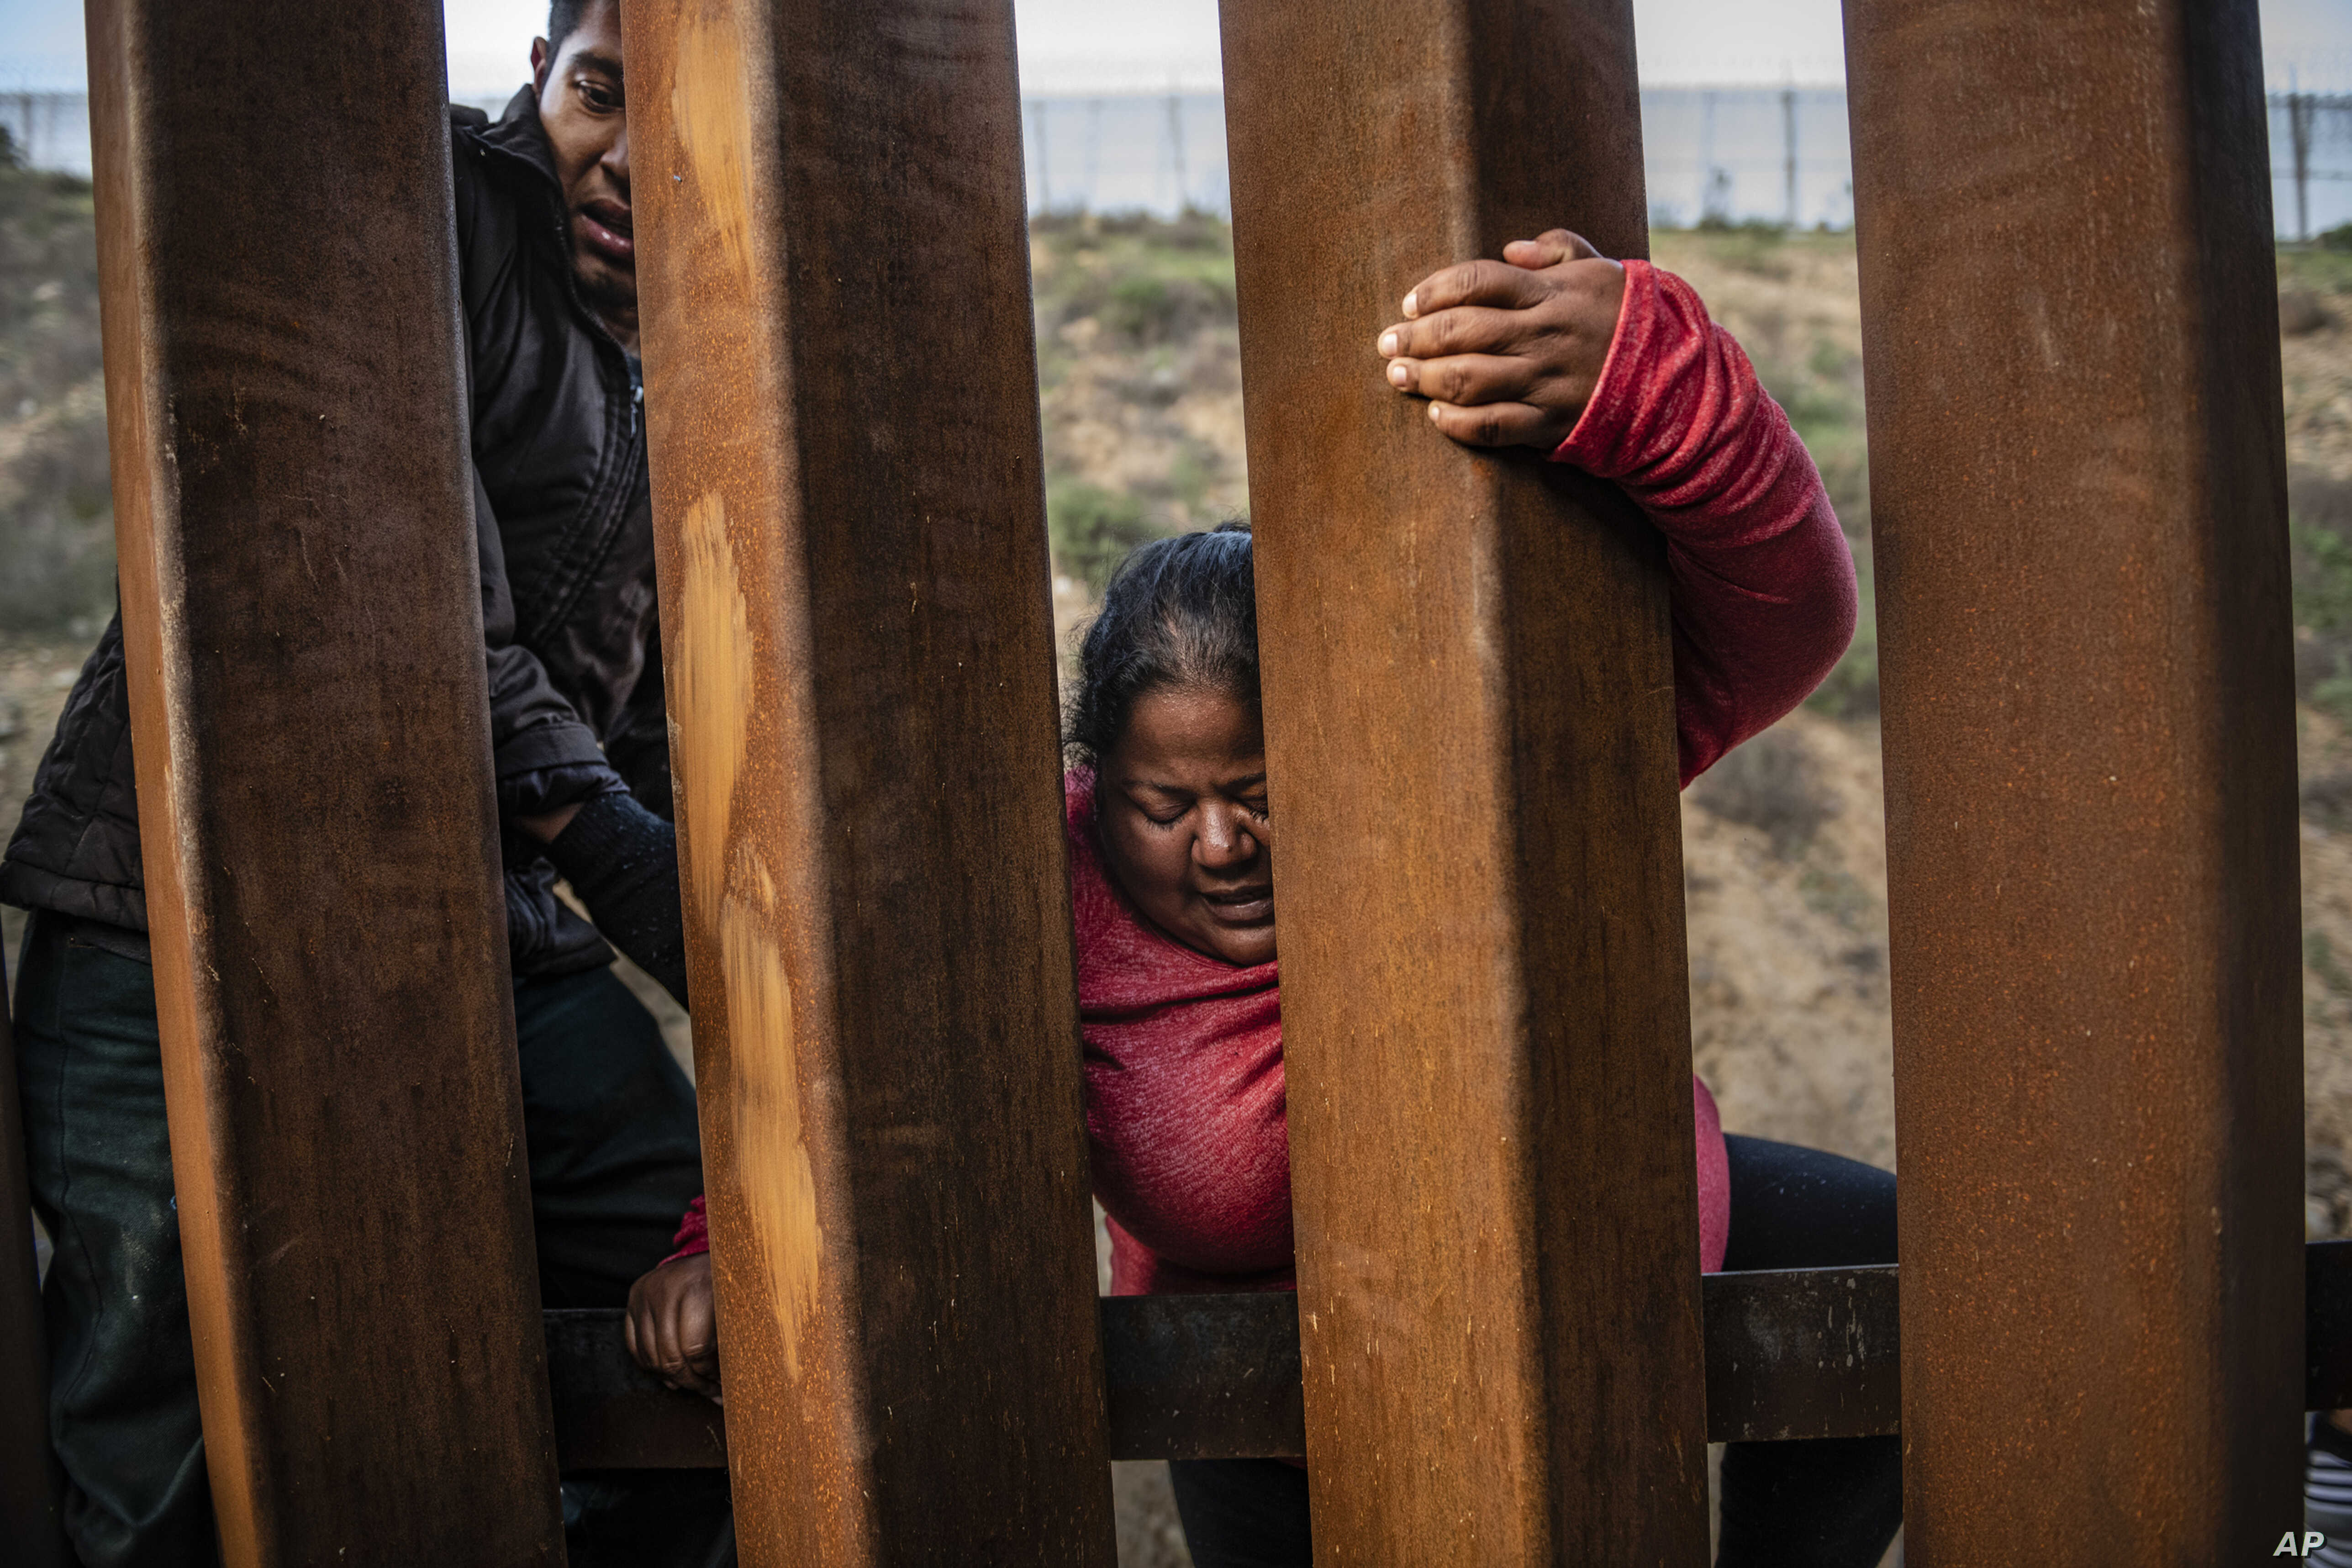 FILE - A migrant climbs the border fence before jumping into the U.S. in San Diego, California, from Tijuana, Mexico, Dec. 27, 2018.